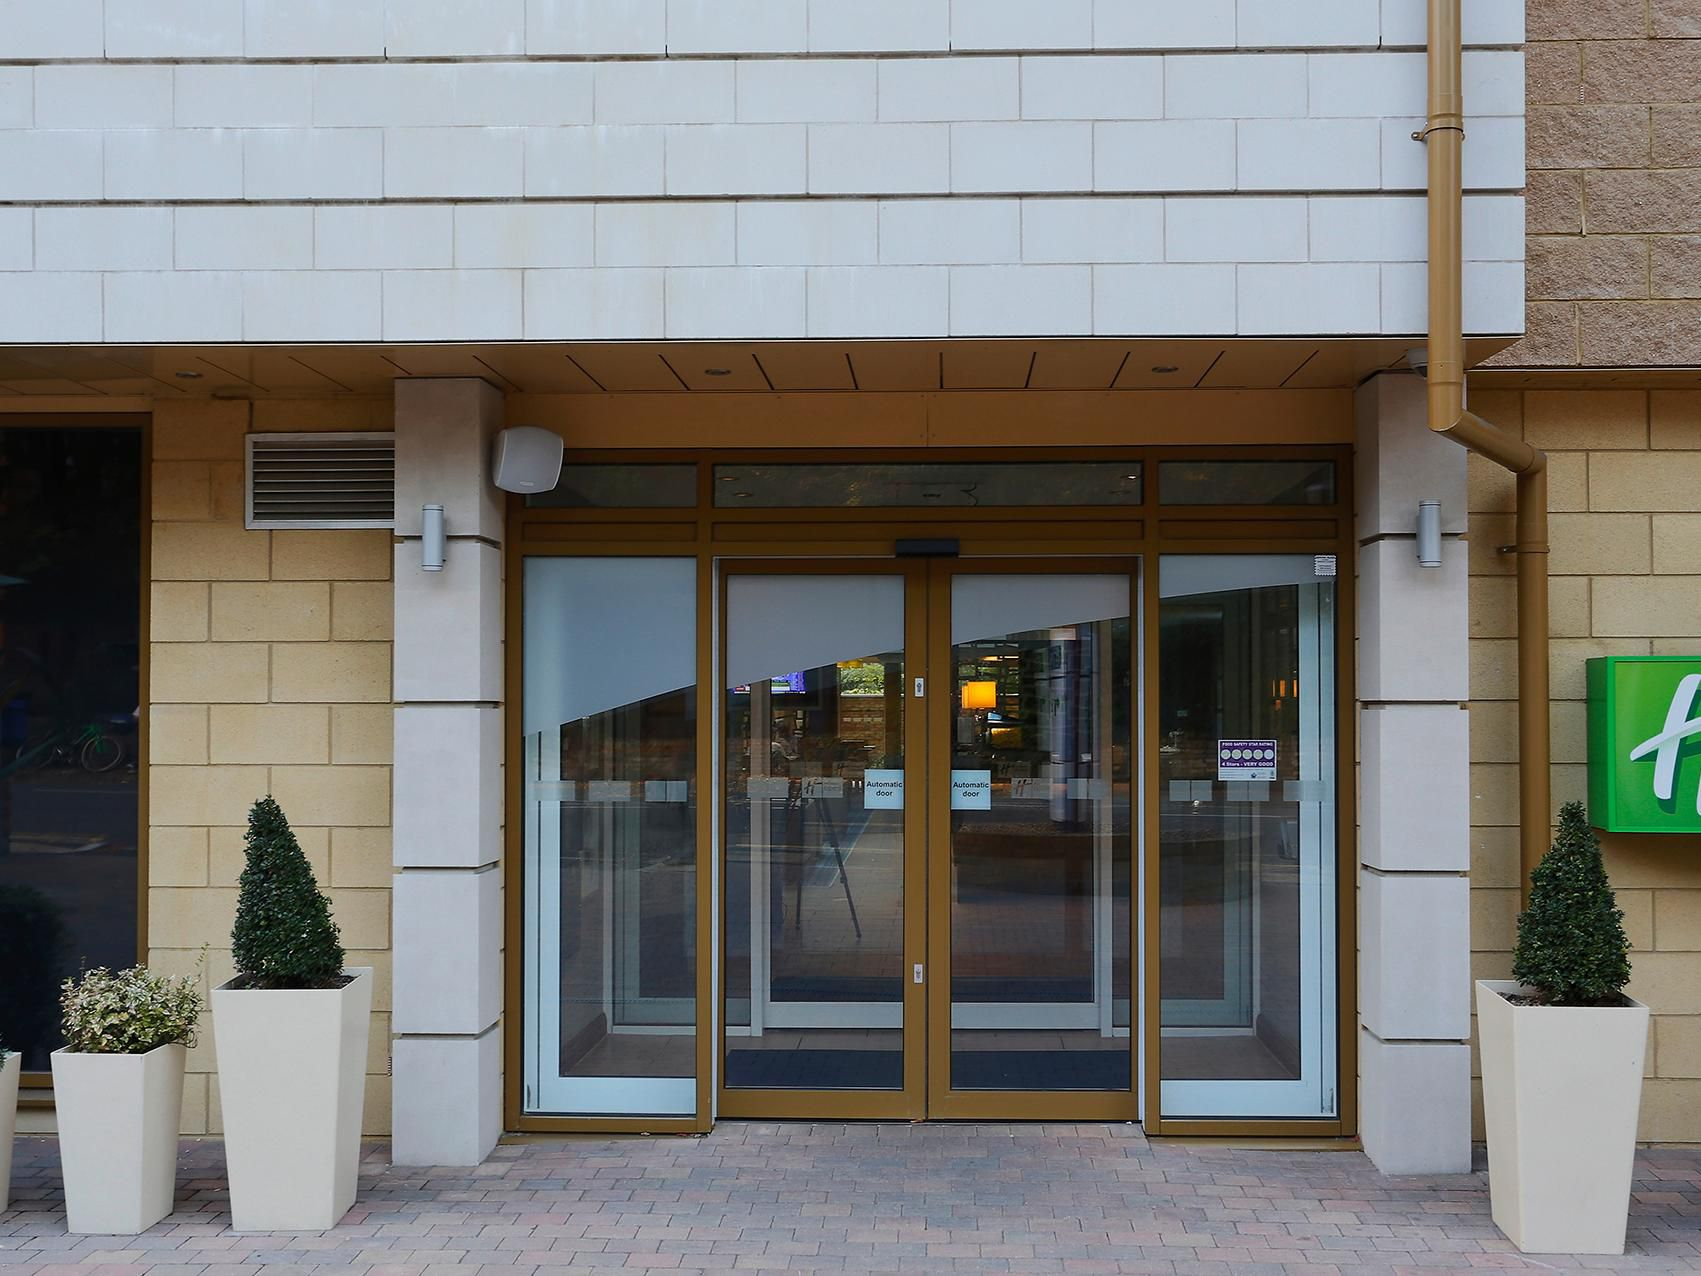 A warm welcome awaits you in the Holiday Inn Express Windsor